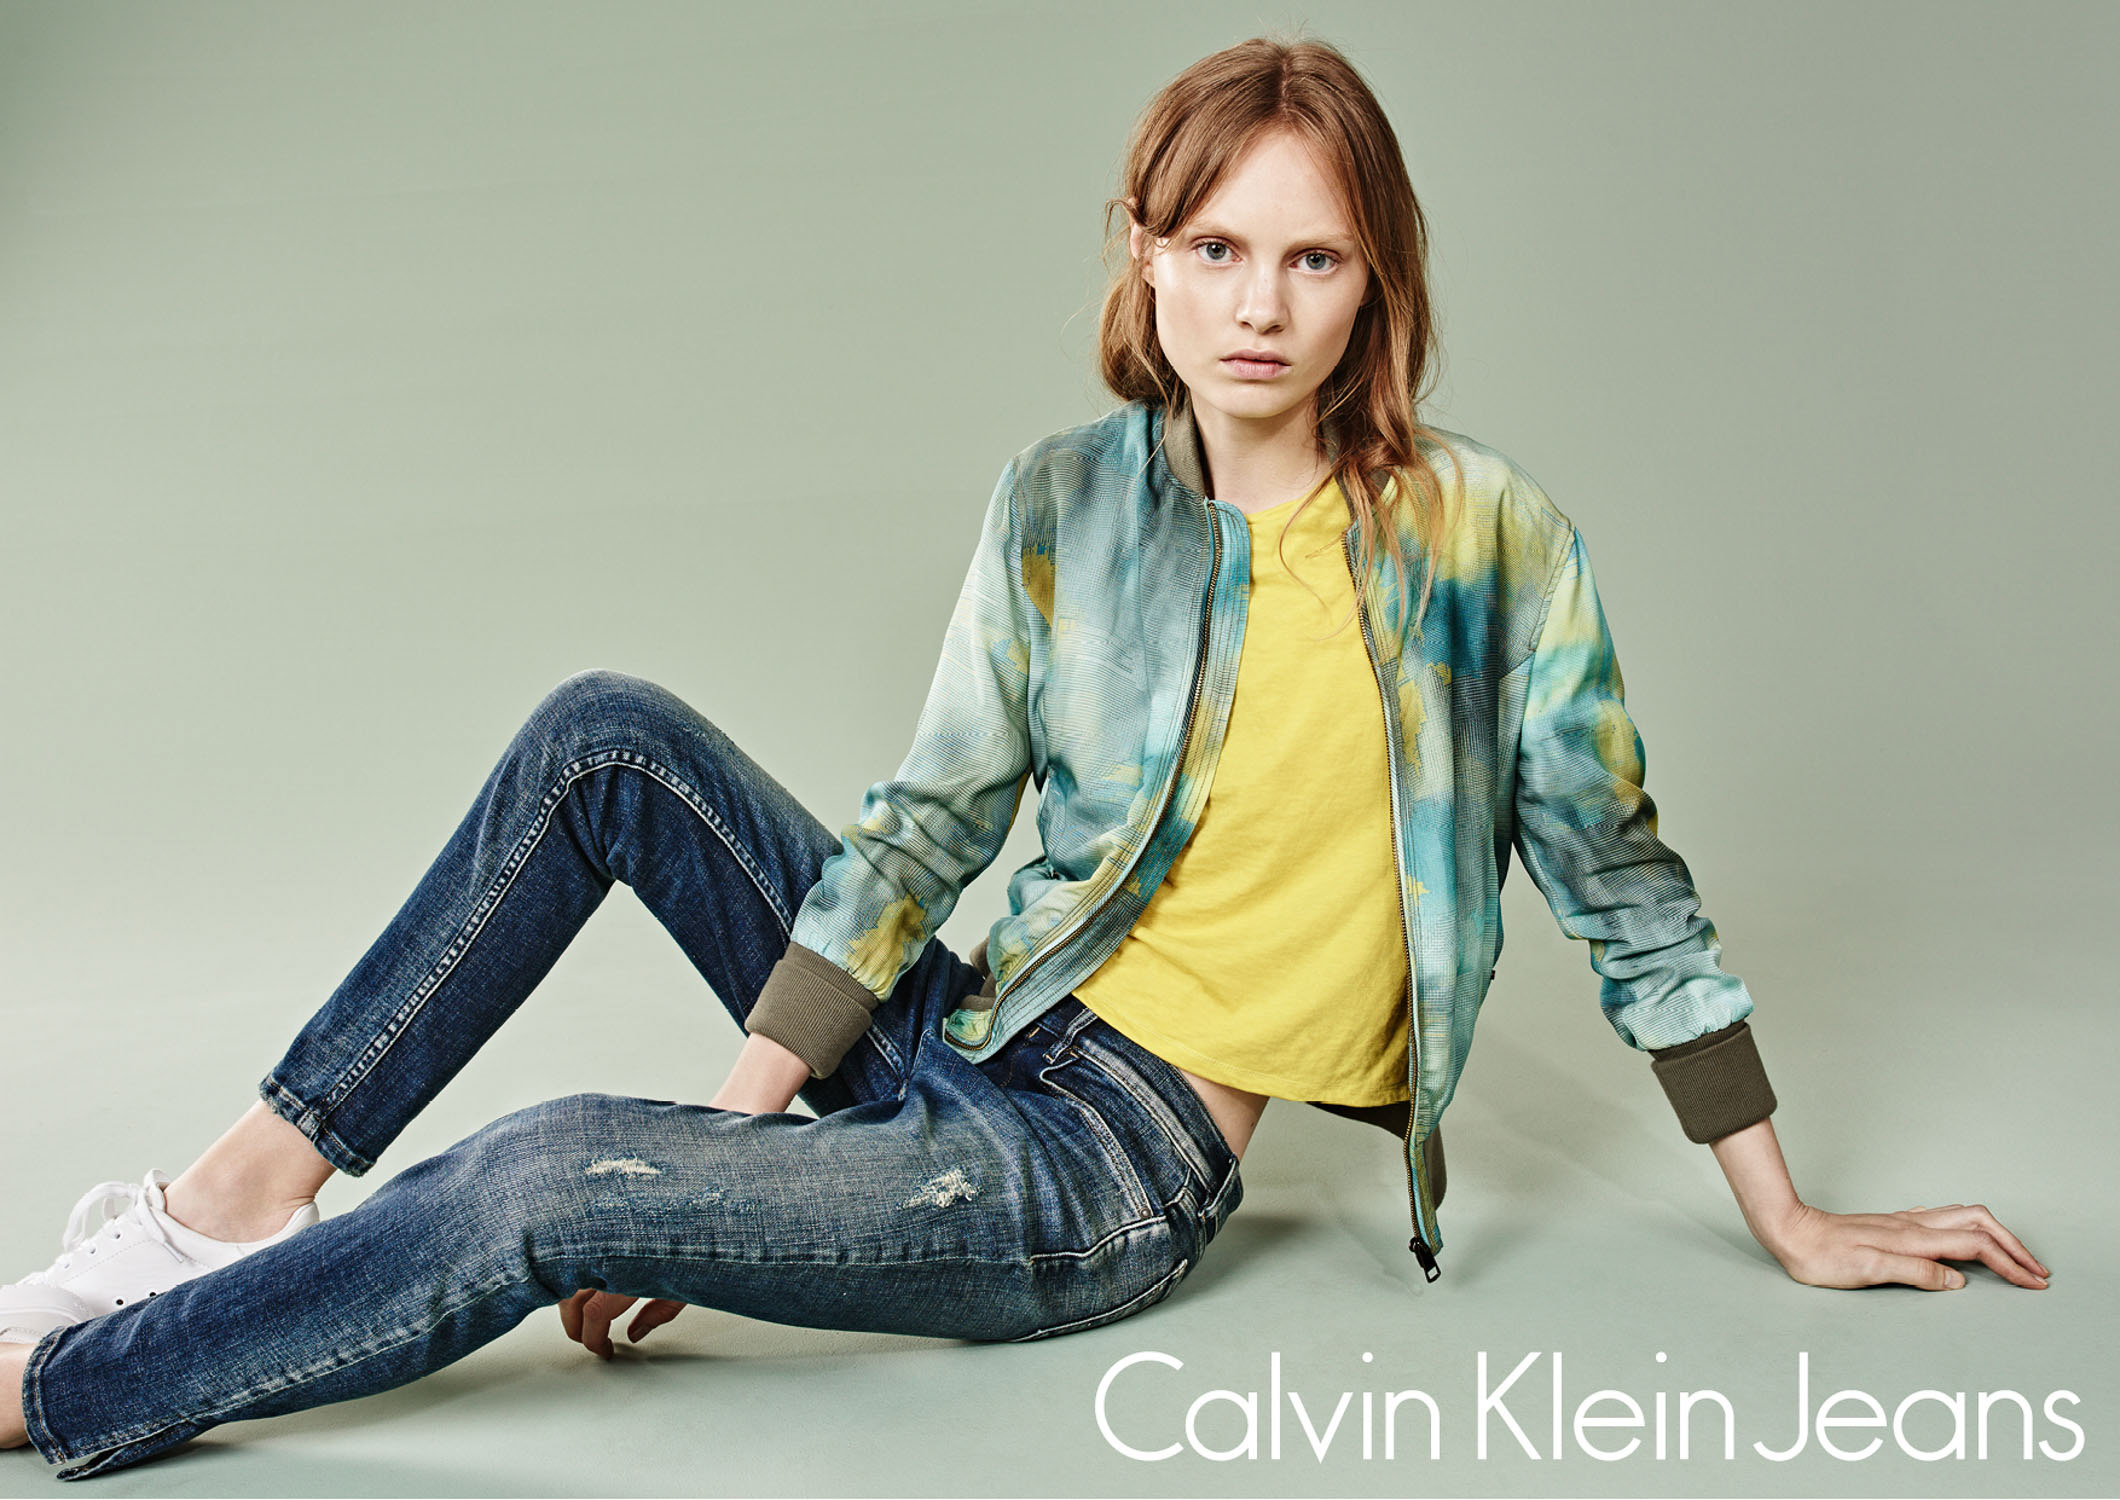 Steffi Soede for CK Jeans by Marc de Groot